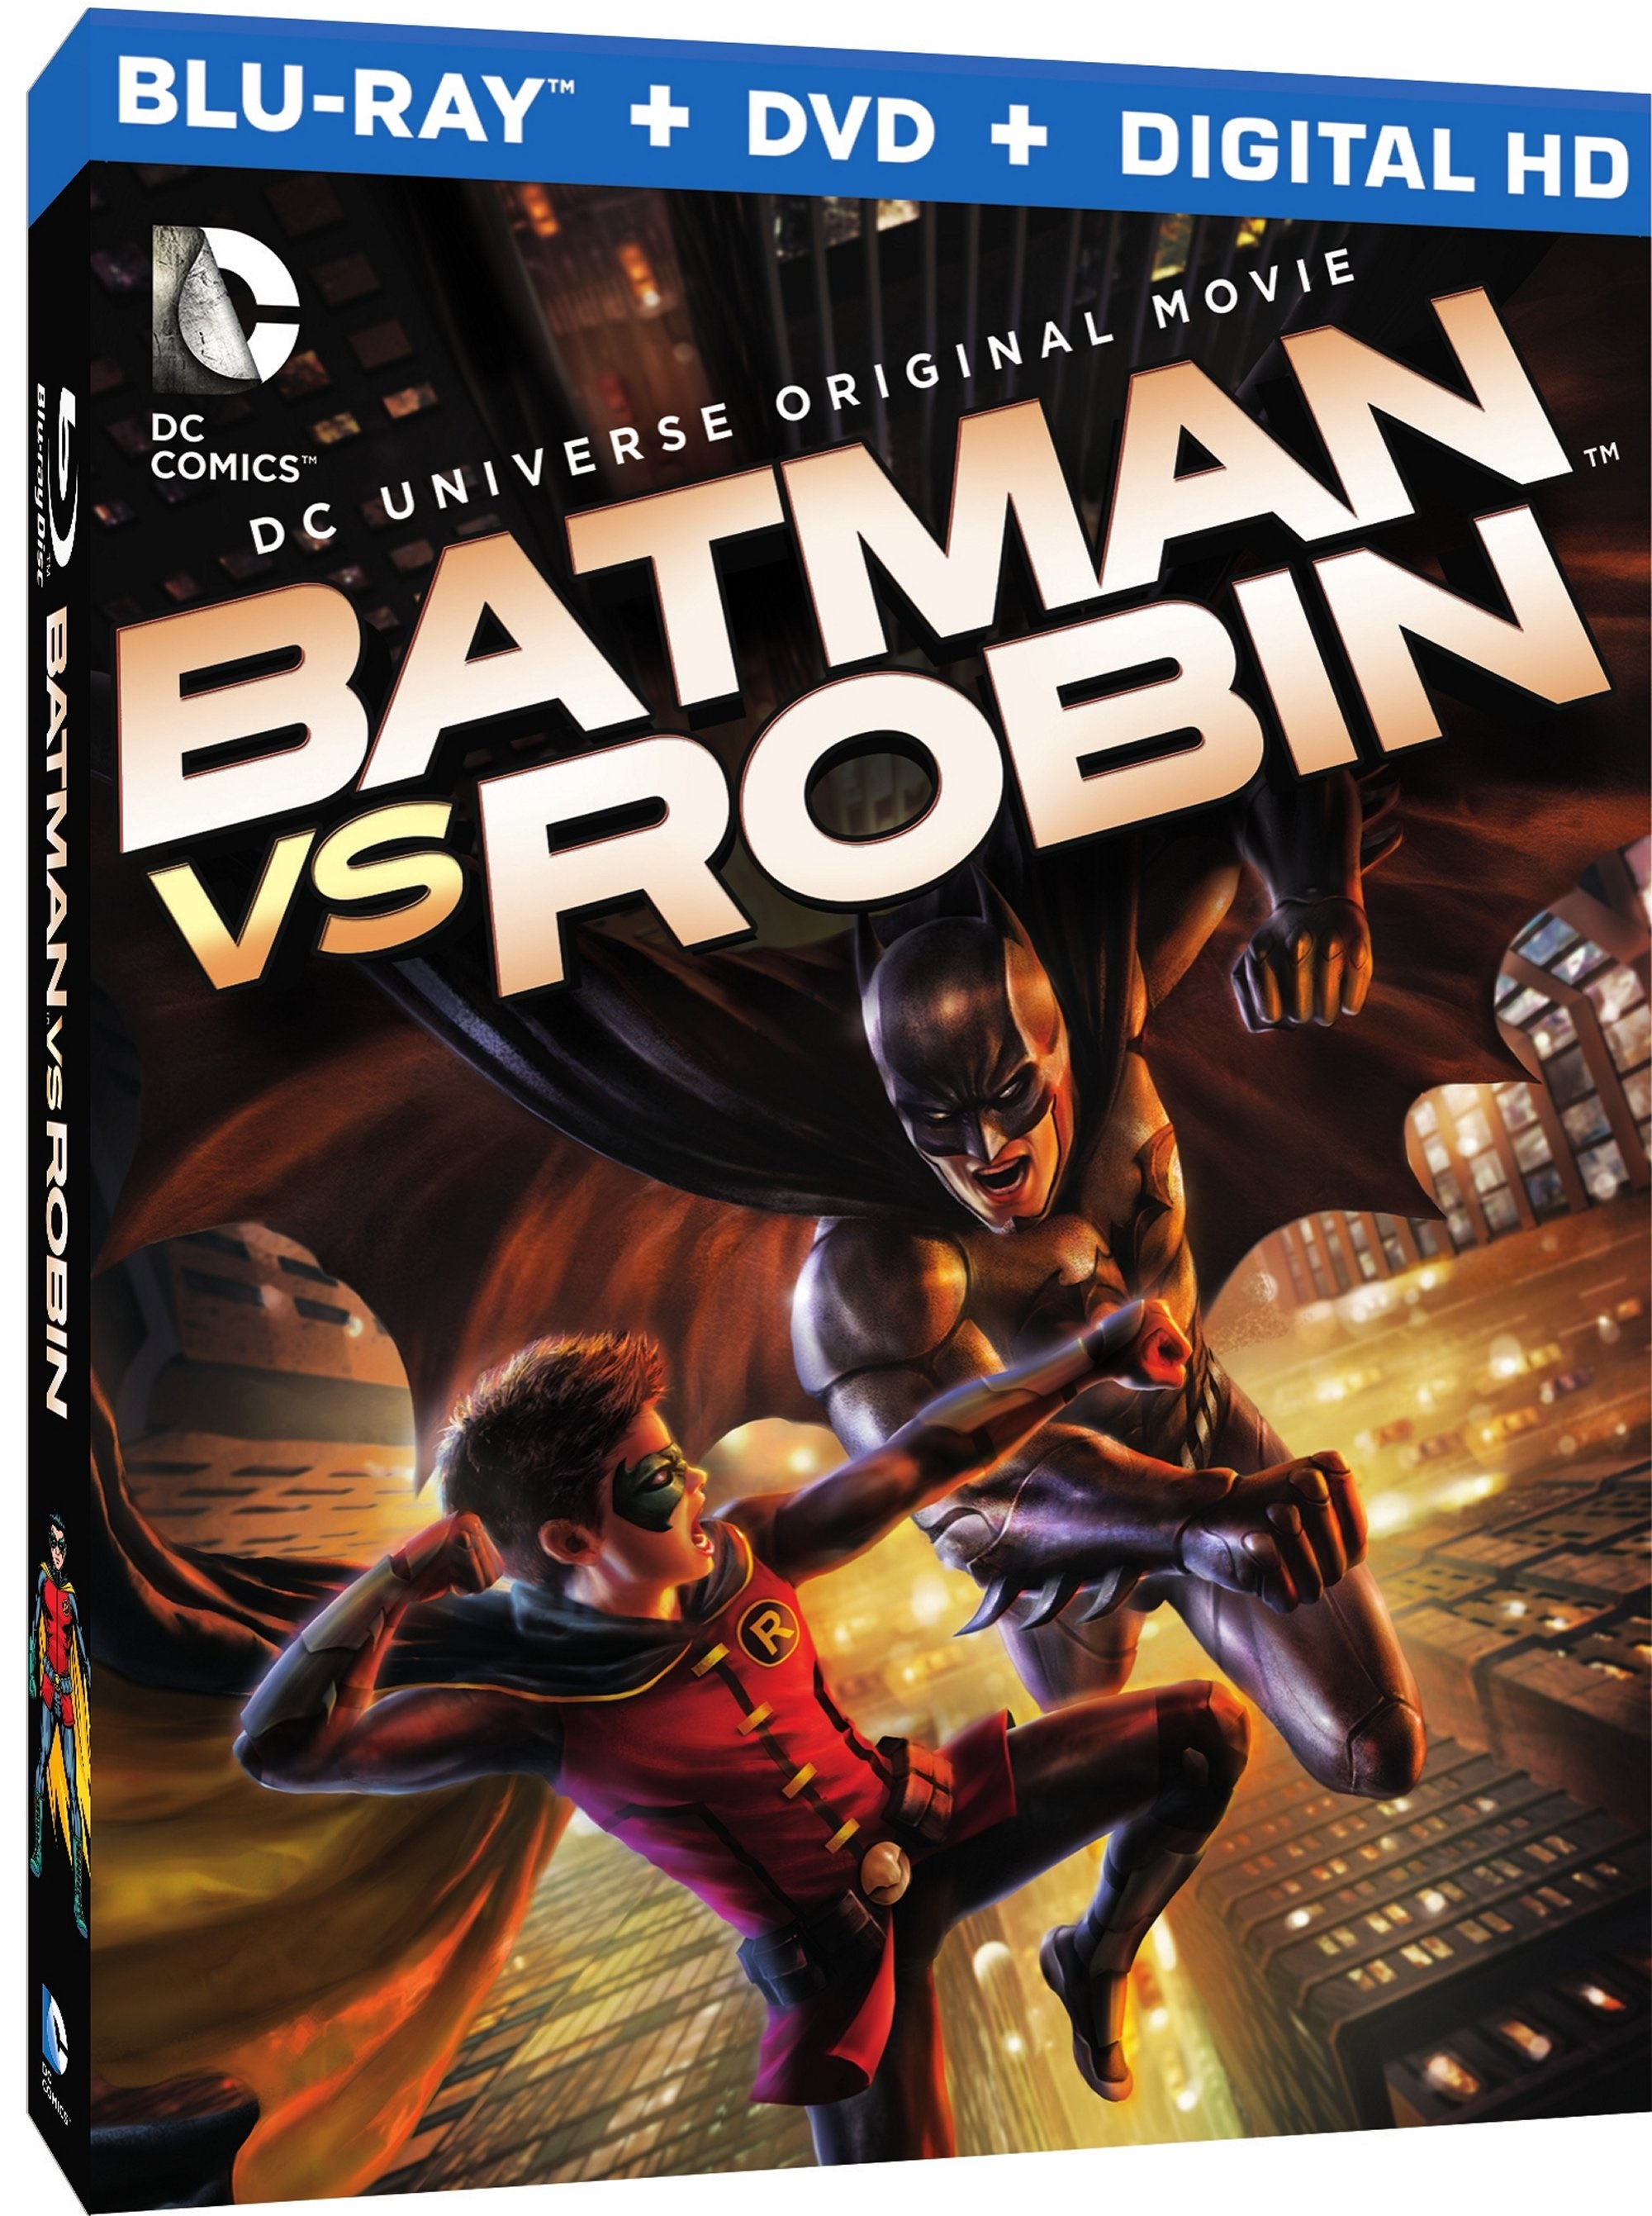 Batman vs Robin Blu-ray Review